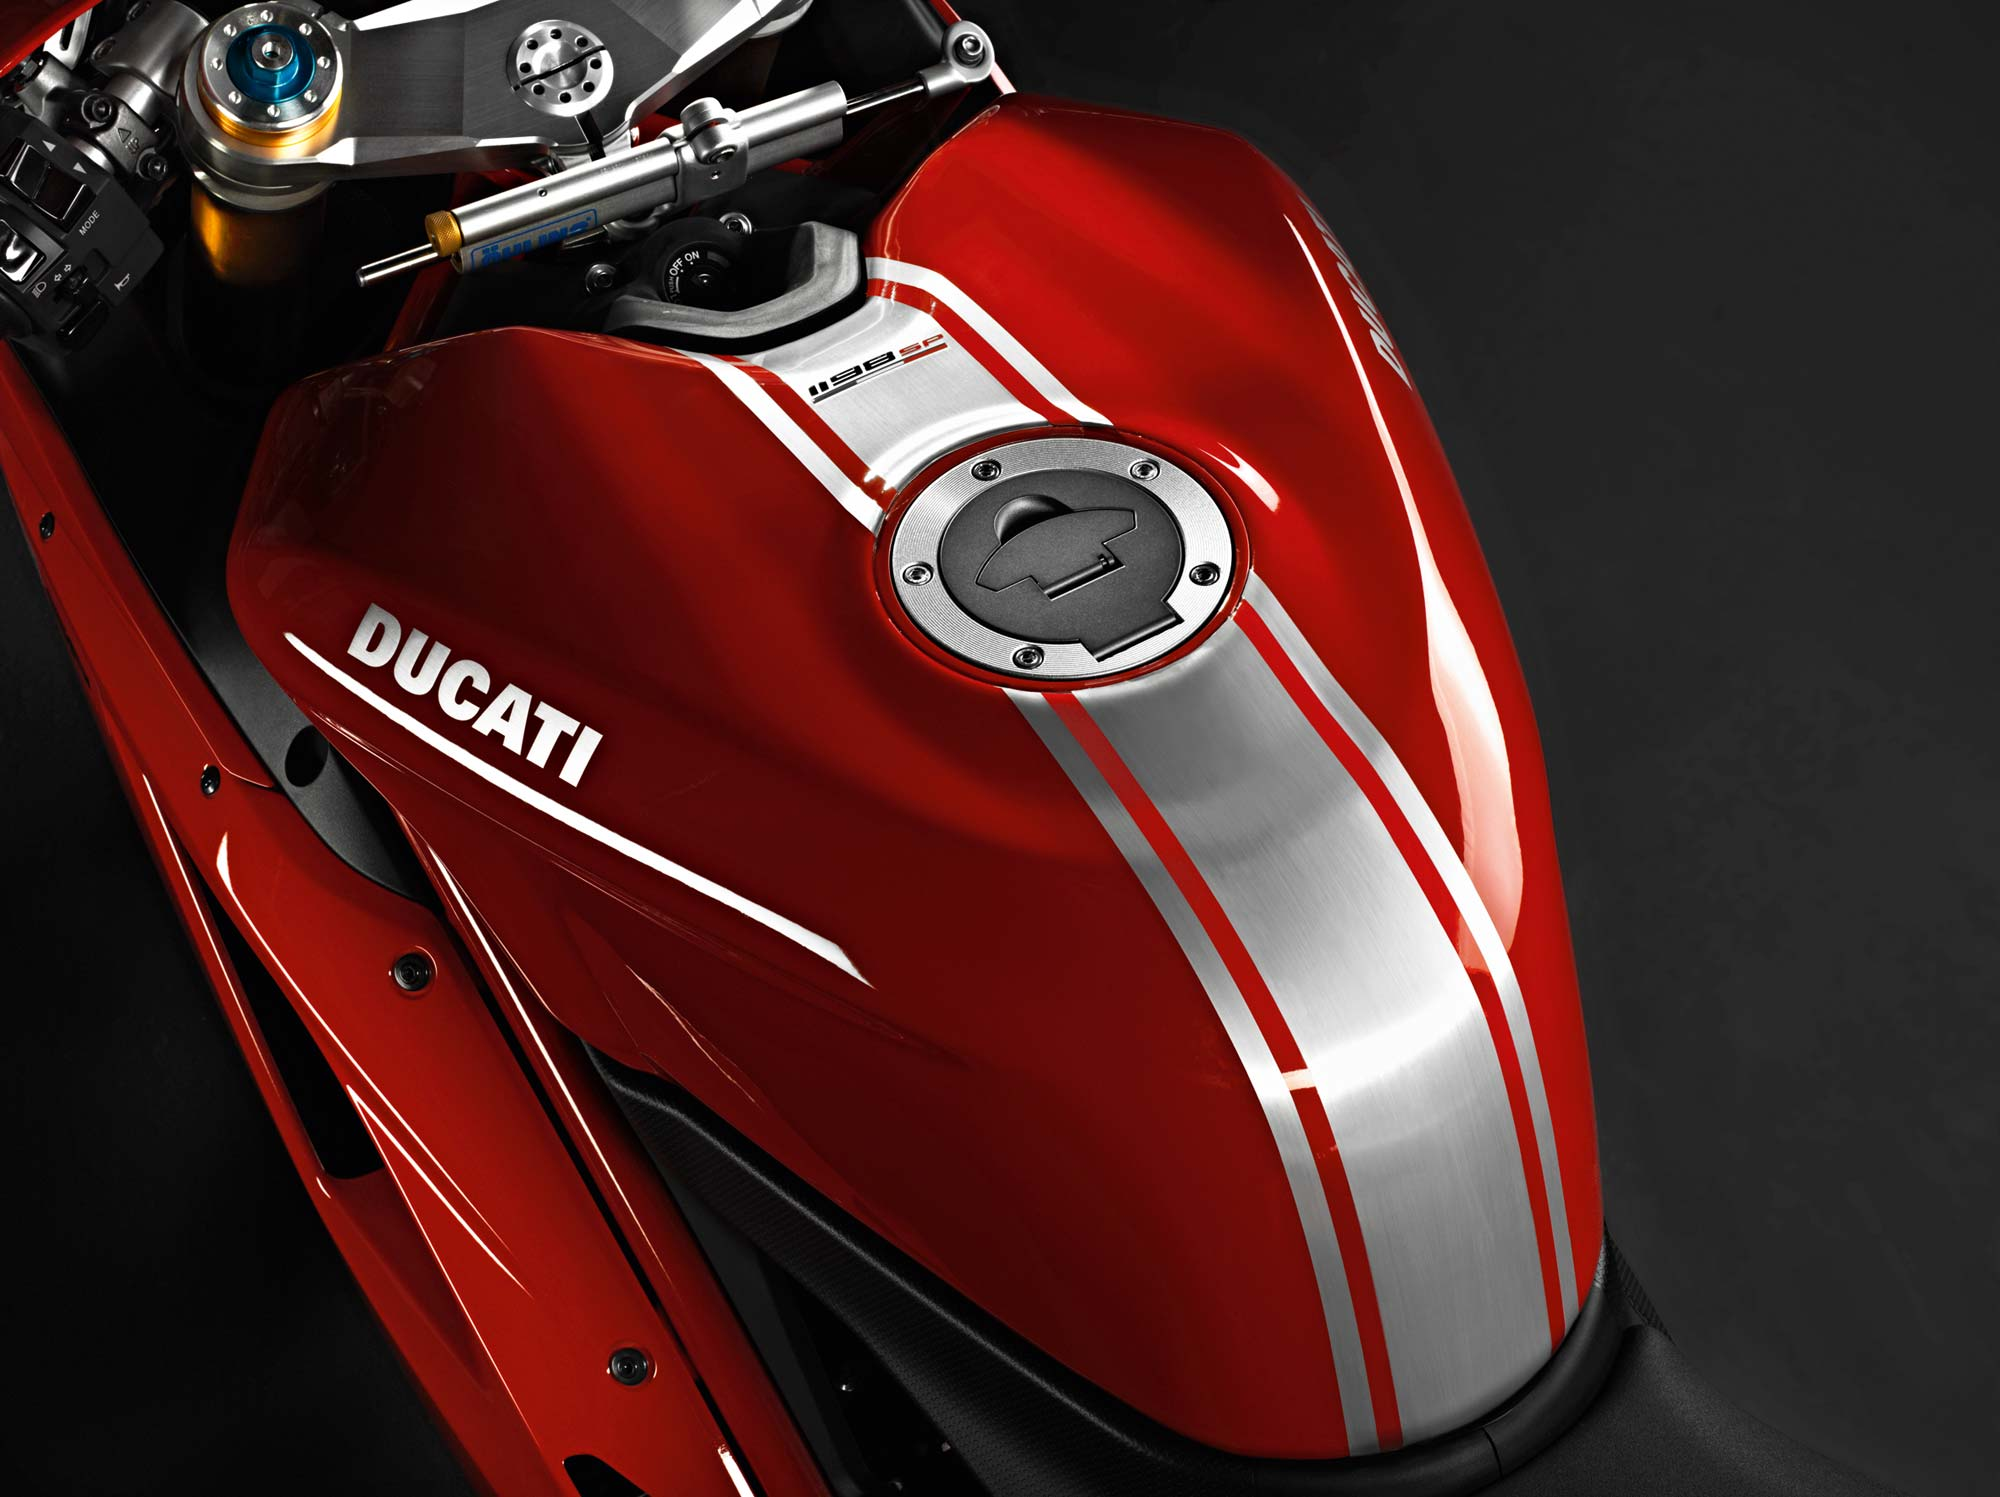 Ducati will stay Ducati, Audi says